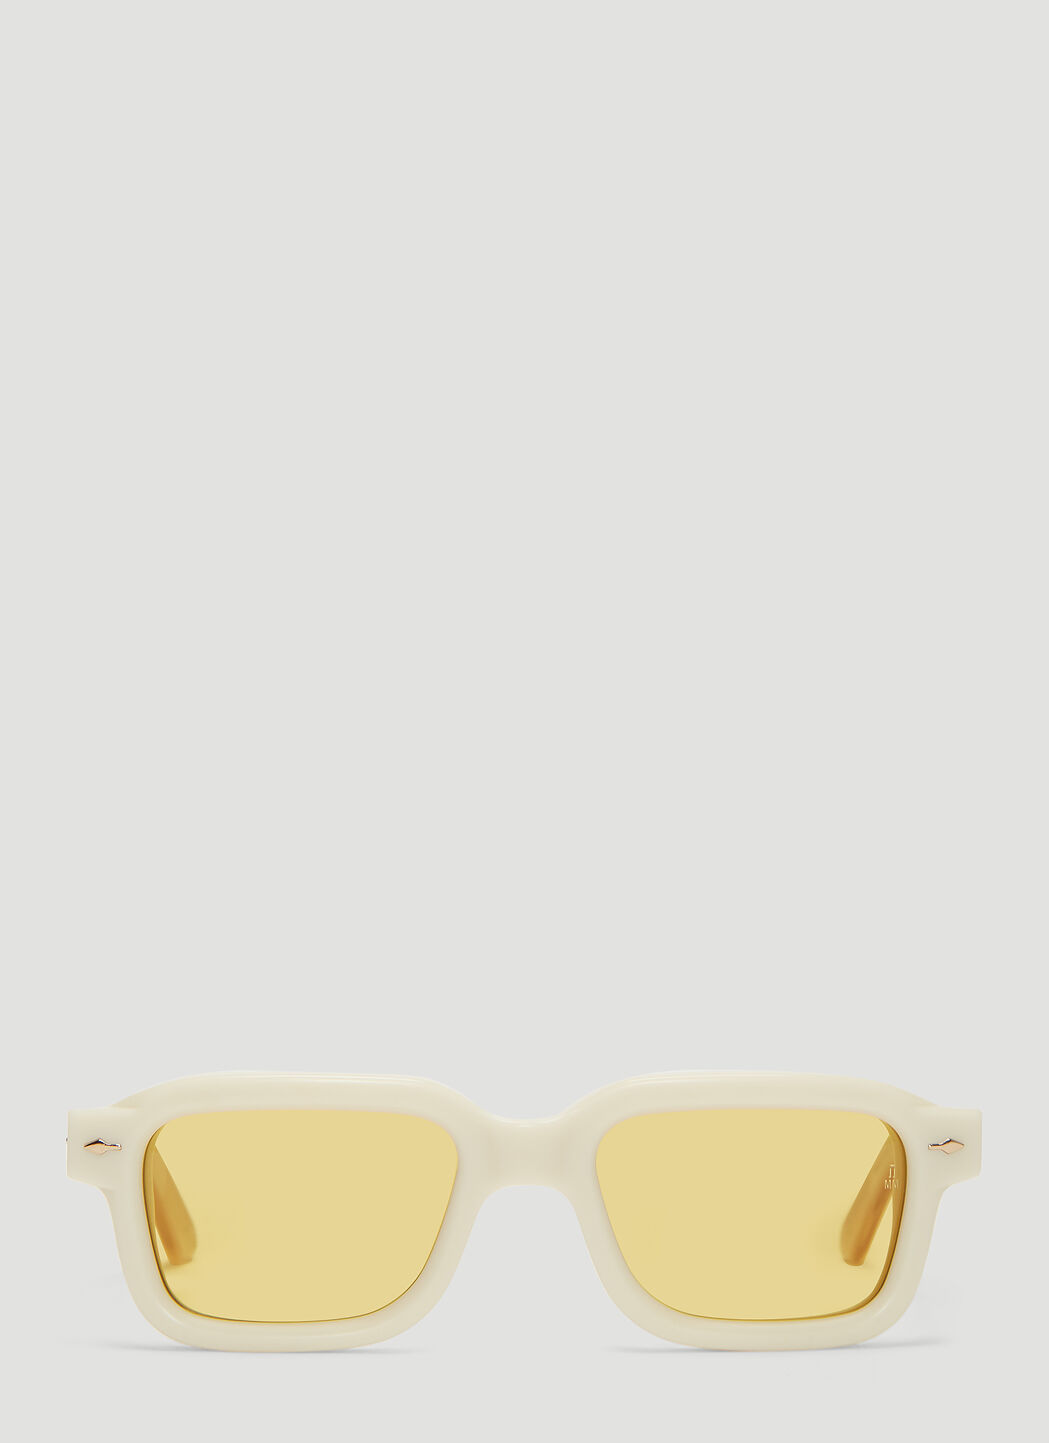 Jacques Marie Mage Sunglasses Sandro Sunglasses in Off-white